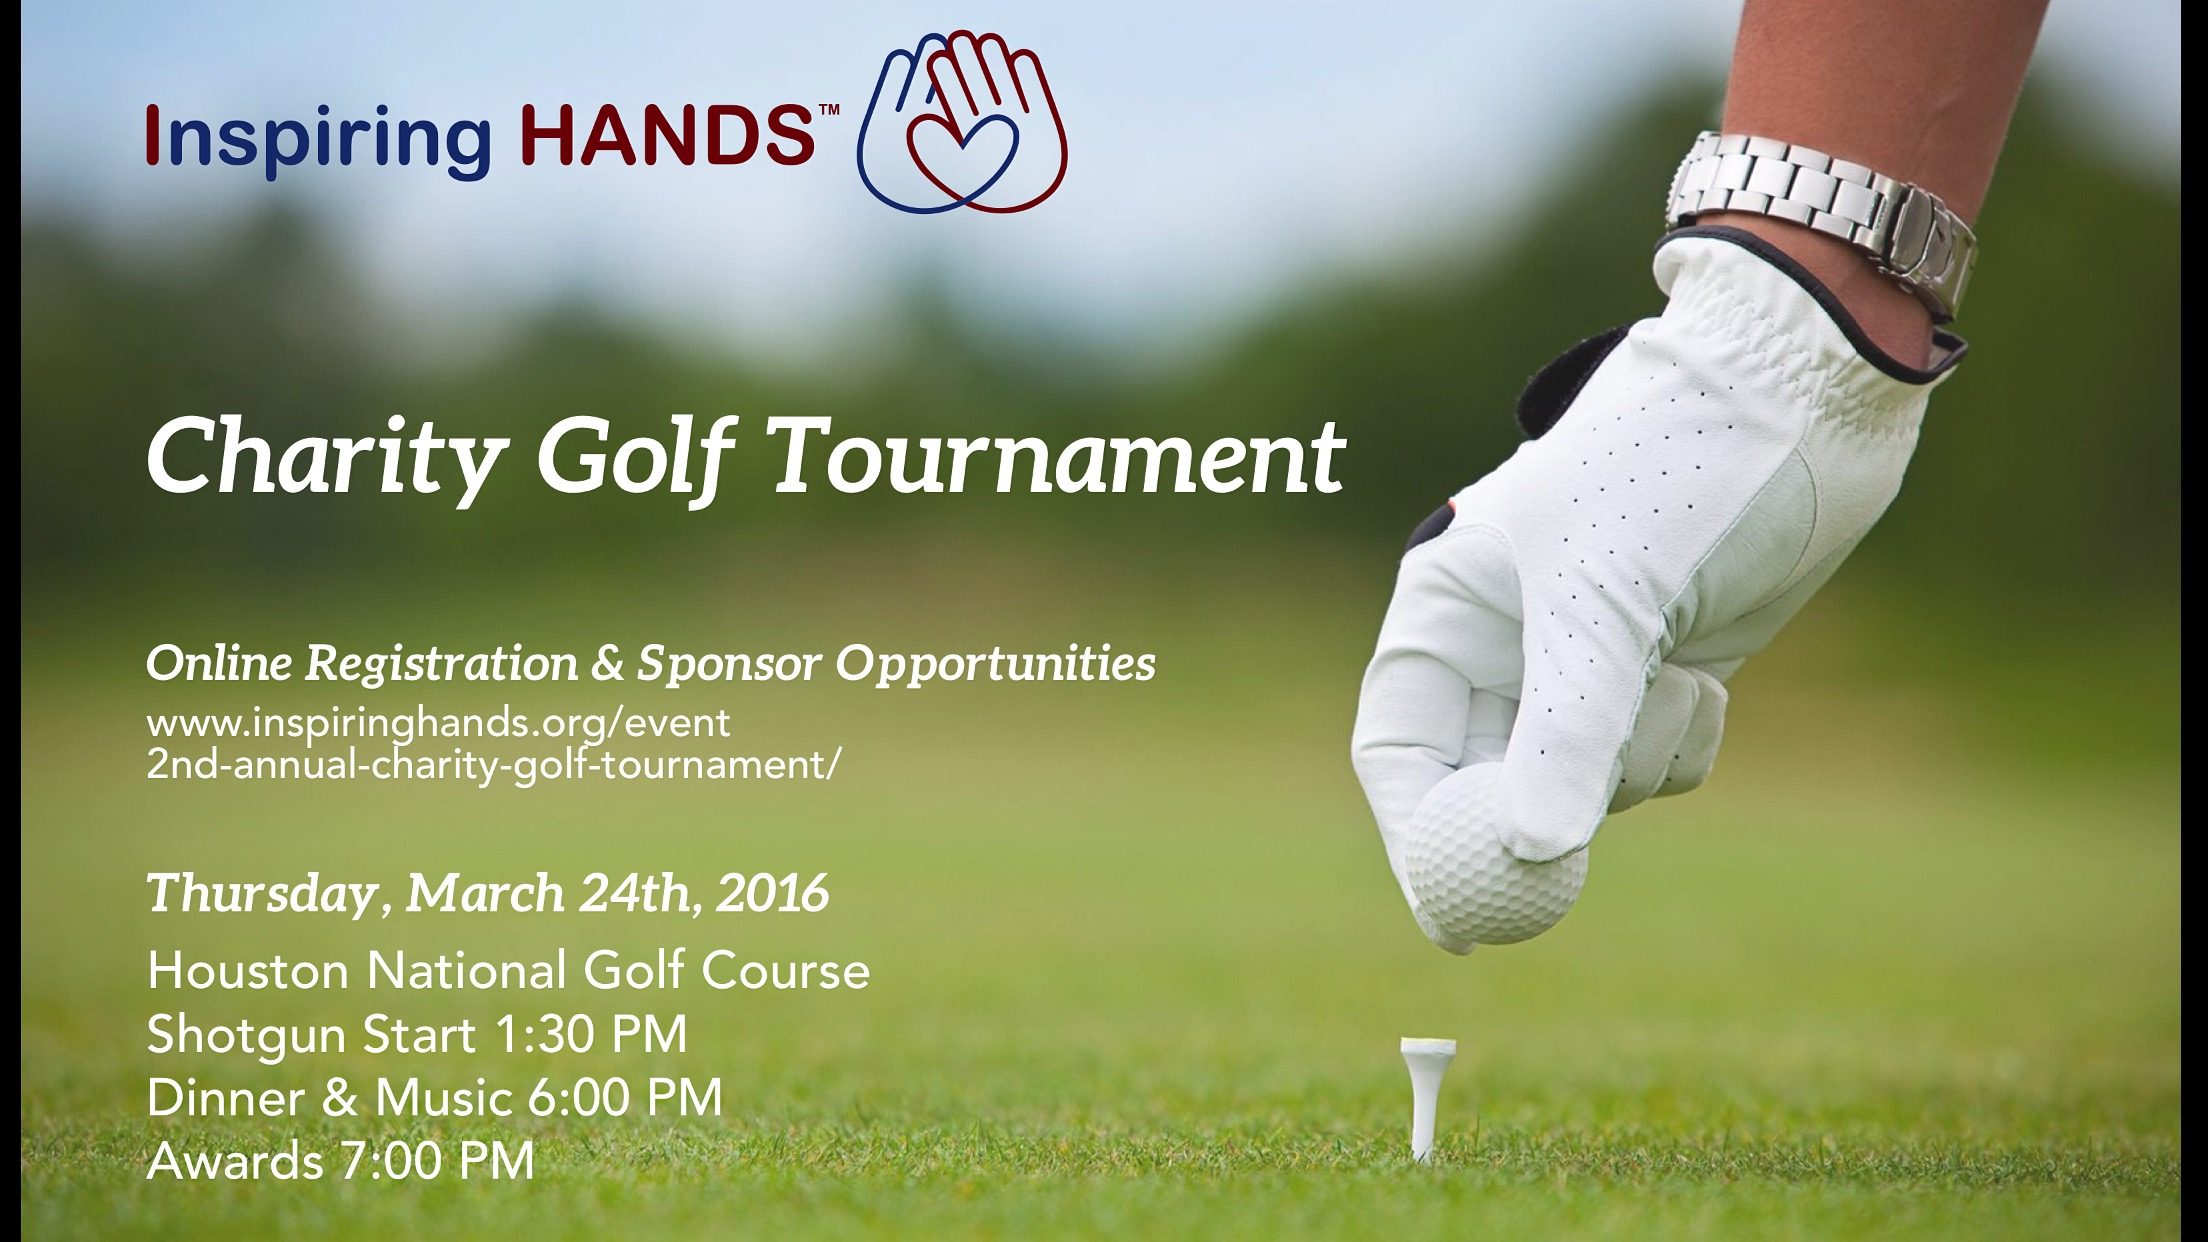 CLICK HERE To View The Golf Tournament Brochure